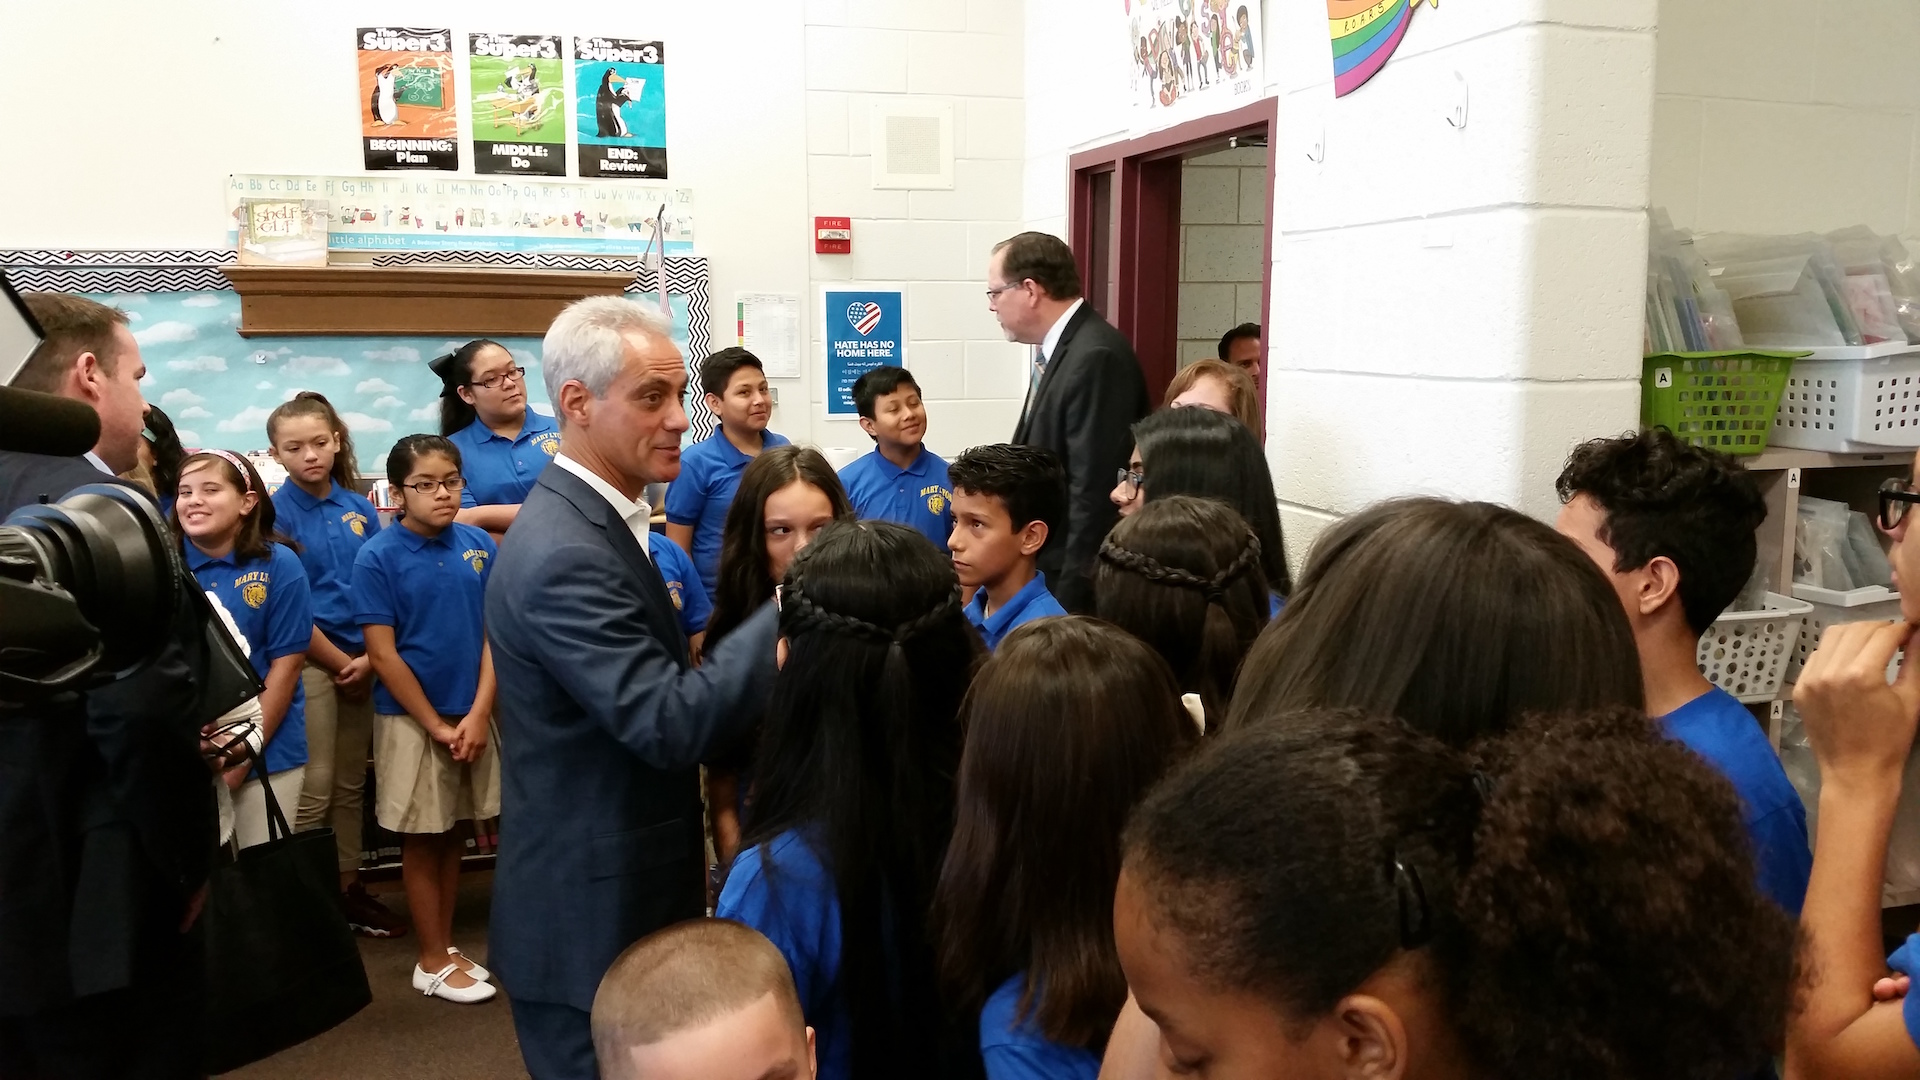 Mayor Rahm Emanuel meets with students at Mary Lyon Elementary on Thursday. (Matt Masterson / Chicago Tonight)